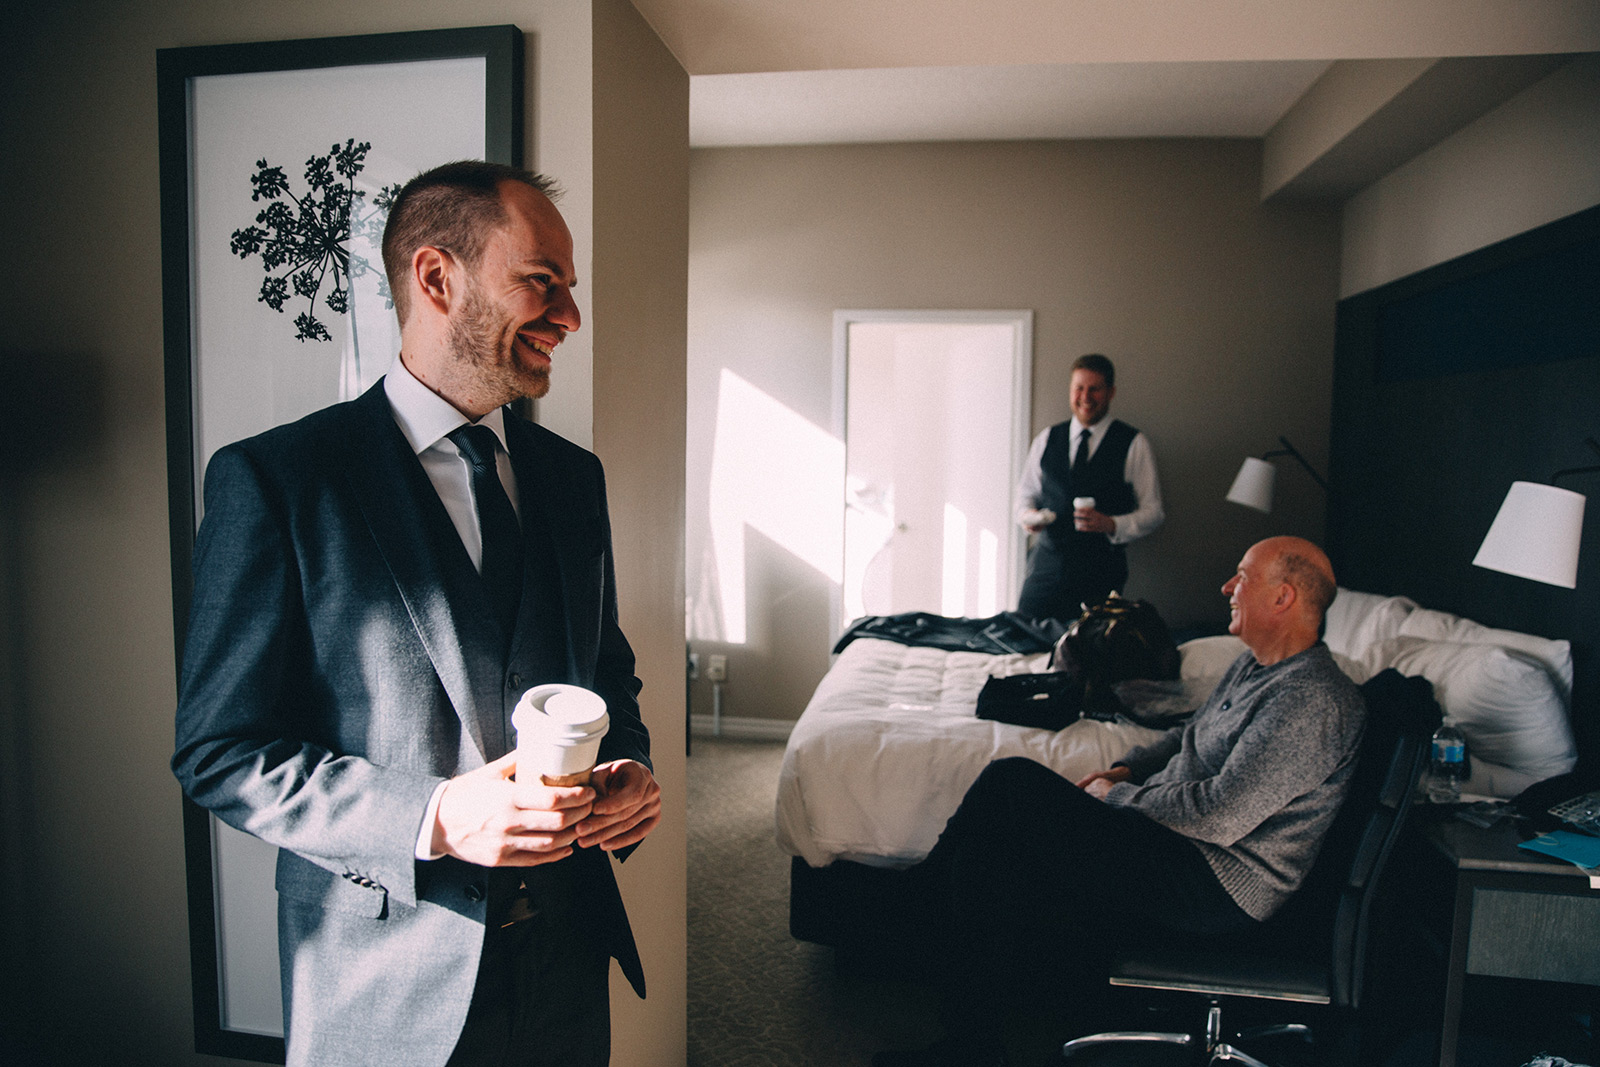 One-King-West-Toronto-wedding-photography_Sam-Wong-of-Visual-Cravings_KnR-09